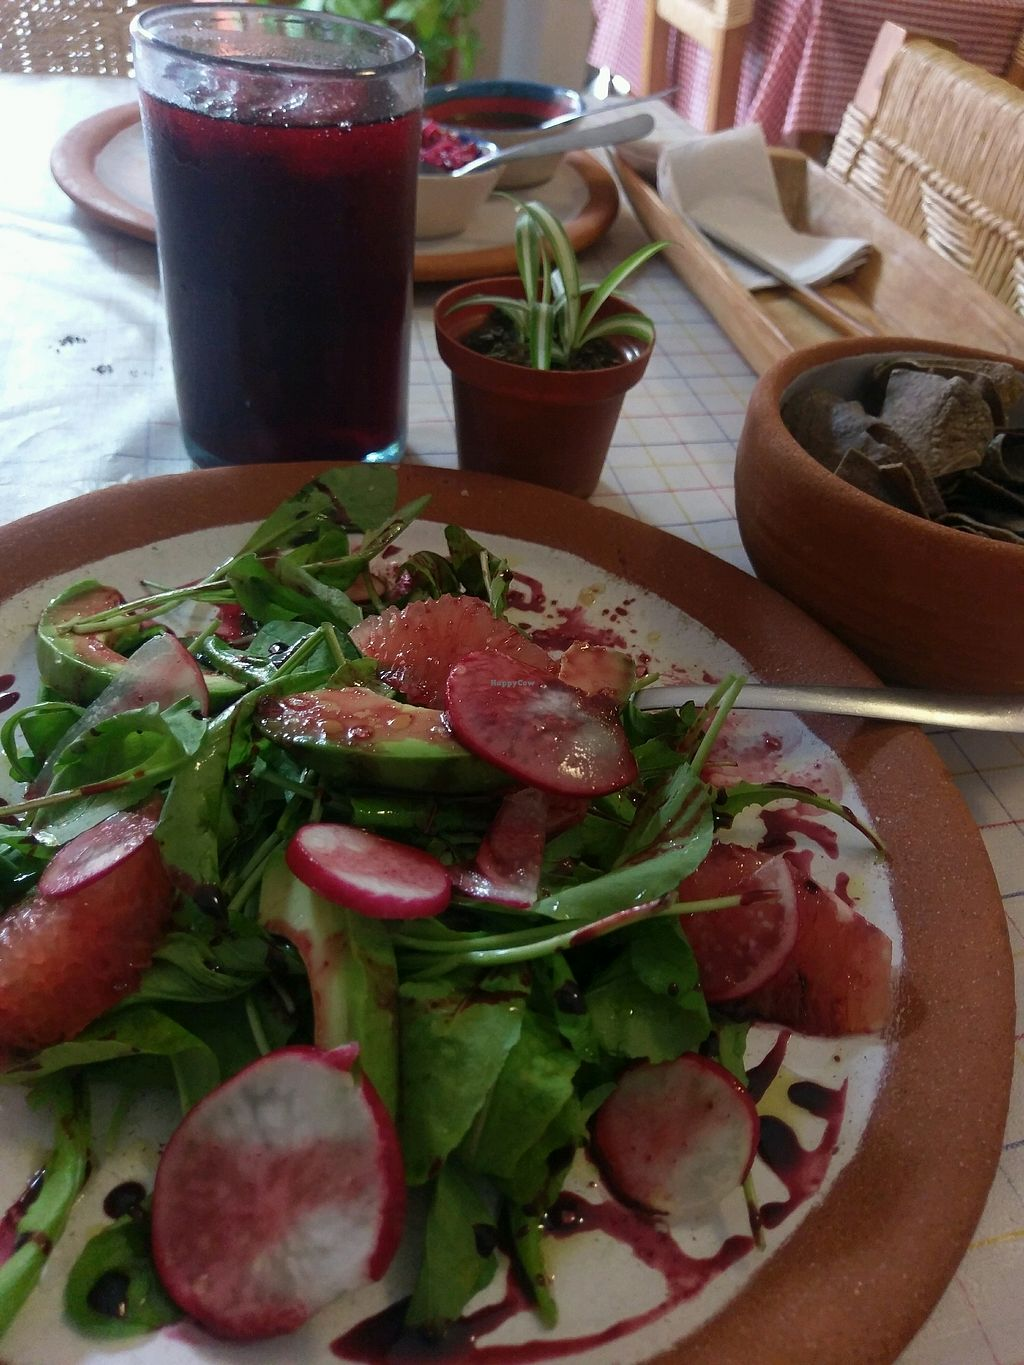 """Photo of Cabuche  by <a href=""""/members/profile/amylorelle"""">amylorelle</a> <br/>super yummy arugula salad with raddish and grapefruit. very light <br/> September 17, 2017  - <a href='/contact/abuse/image/82103/305186'>Report</a>"""